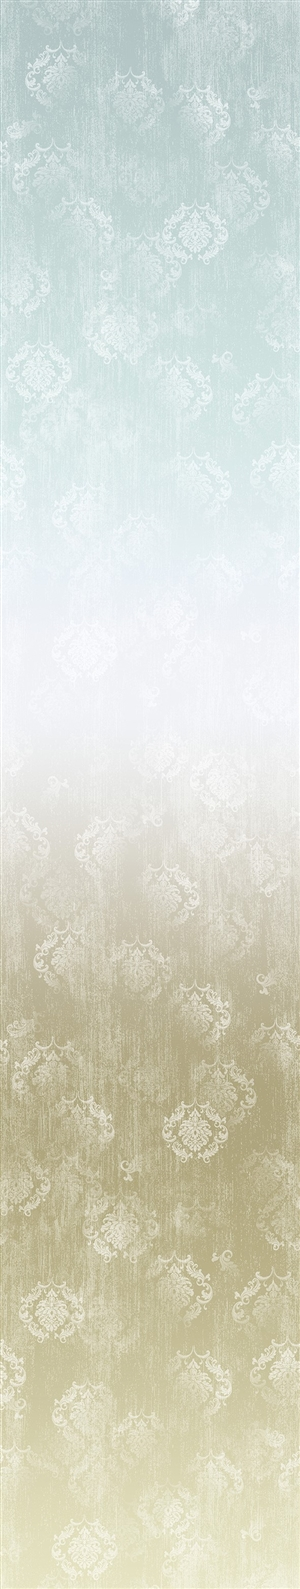 Timeless ombre digital print fabric in blue-gray and neutral tones